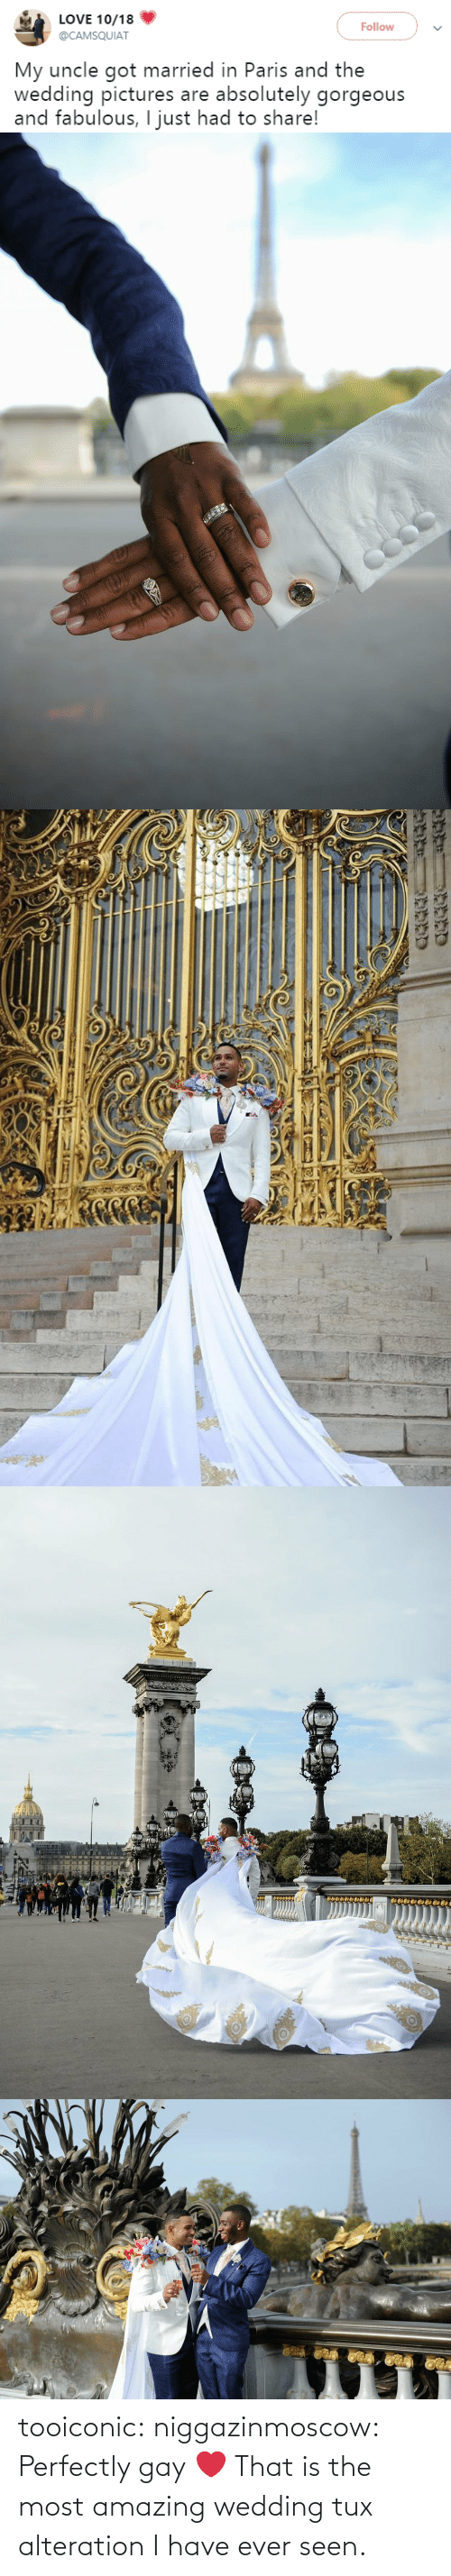 ever: tooiconic:  niggazinmoscow: Perfectly gay❤️  That is the most amazing wedding tux alteration I have ever seen.